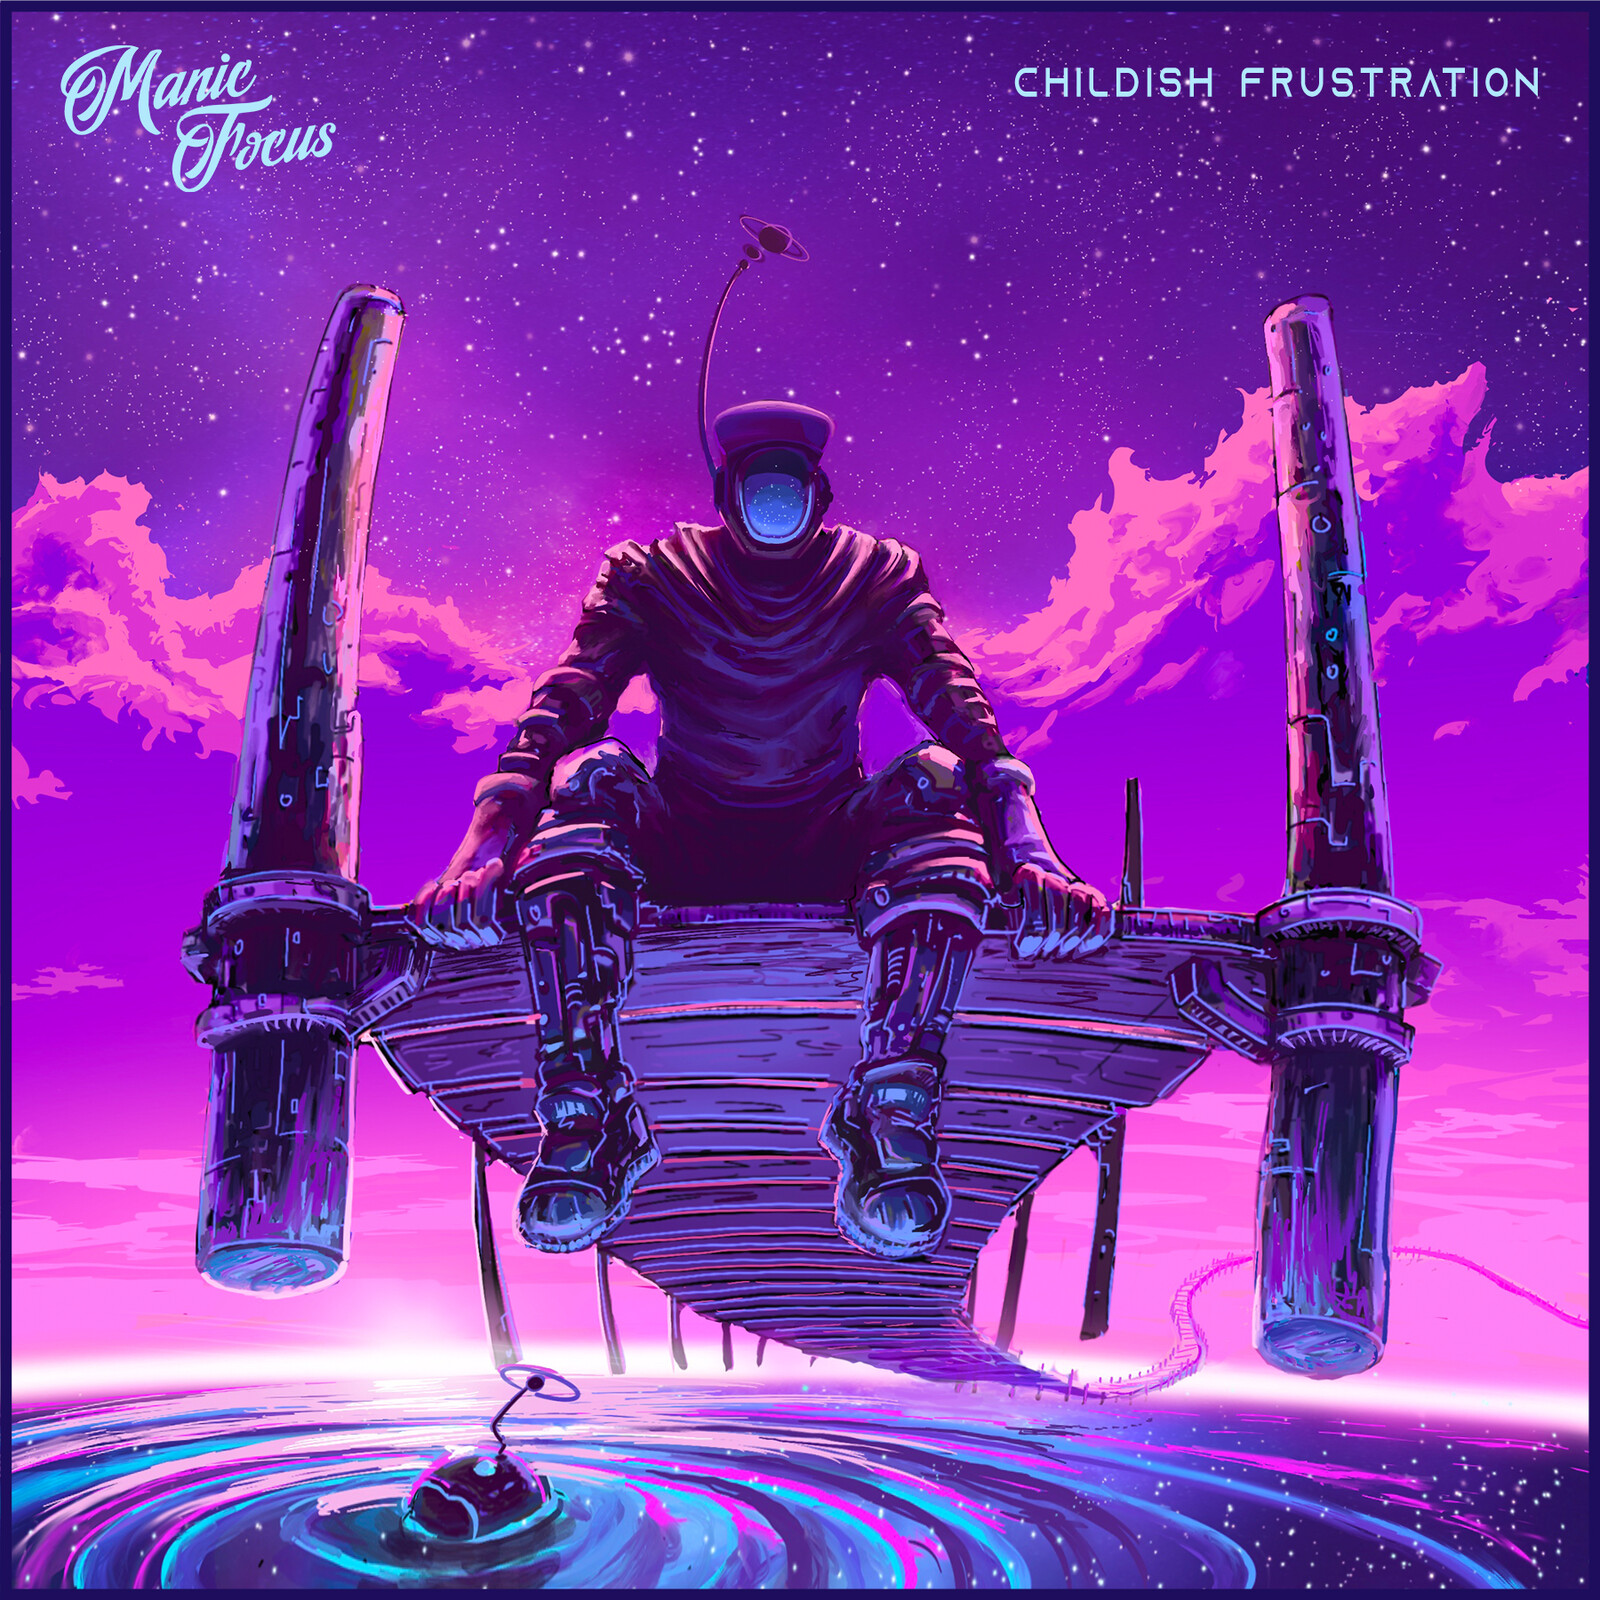 """Space Dock created for Manic Focus's single """"Childish Frustration"""""""